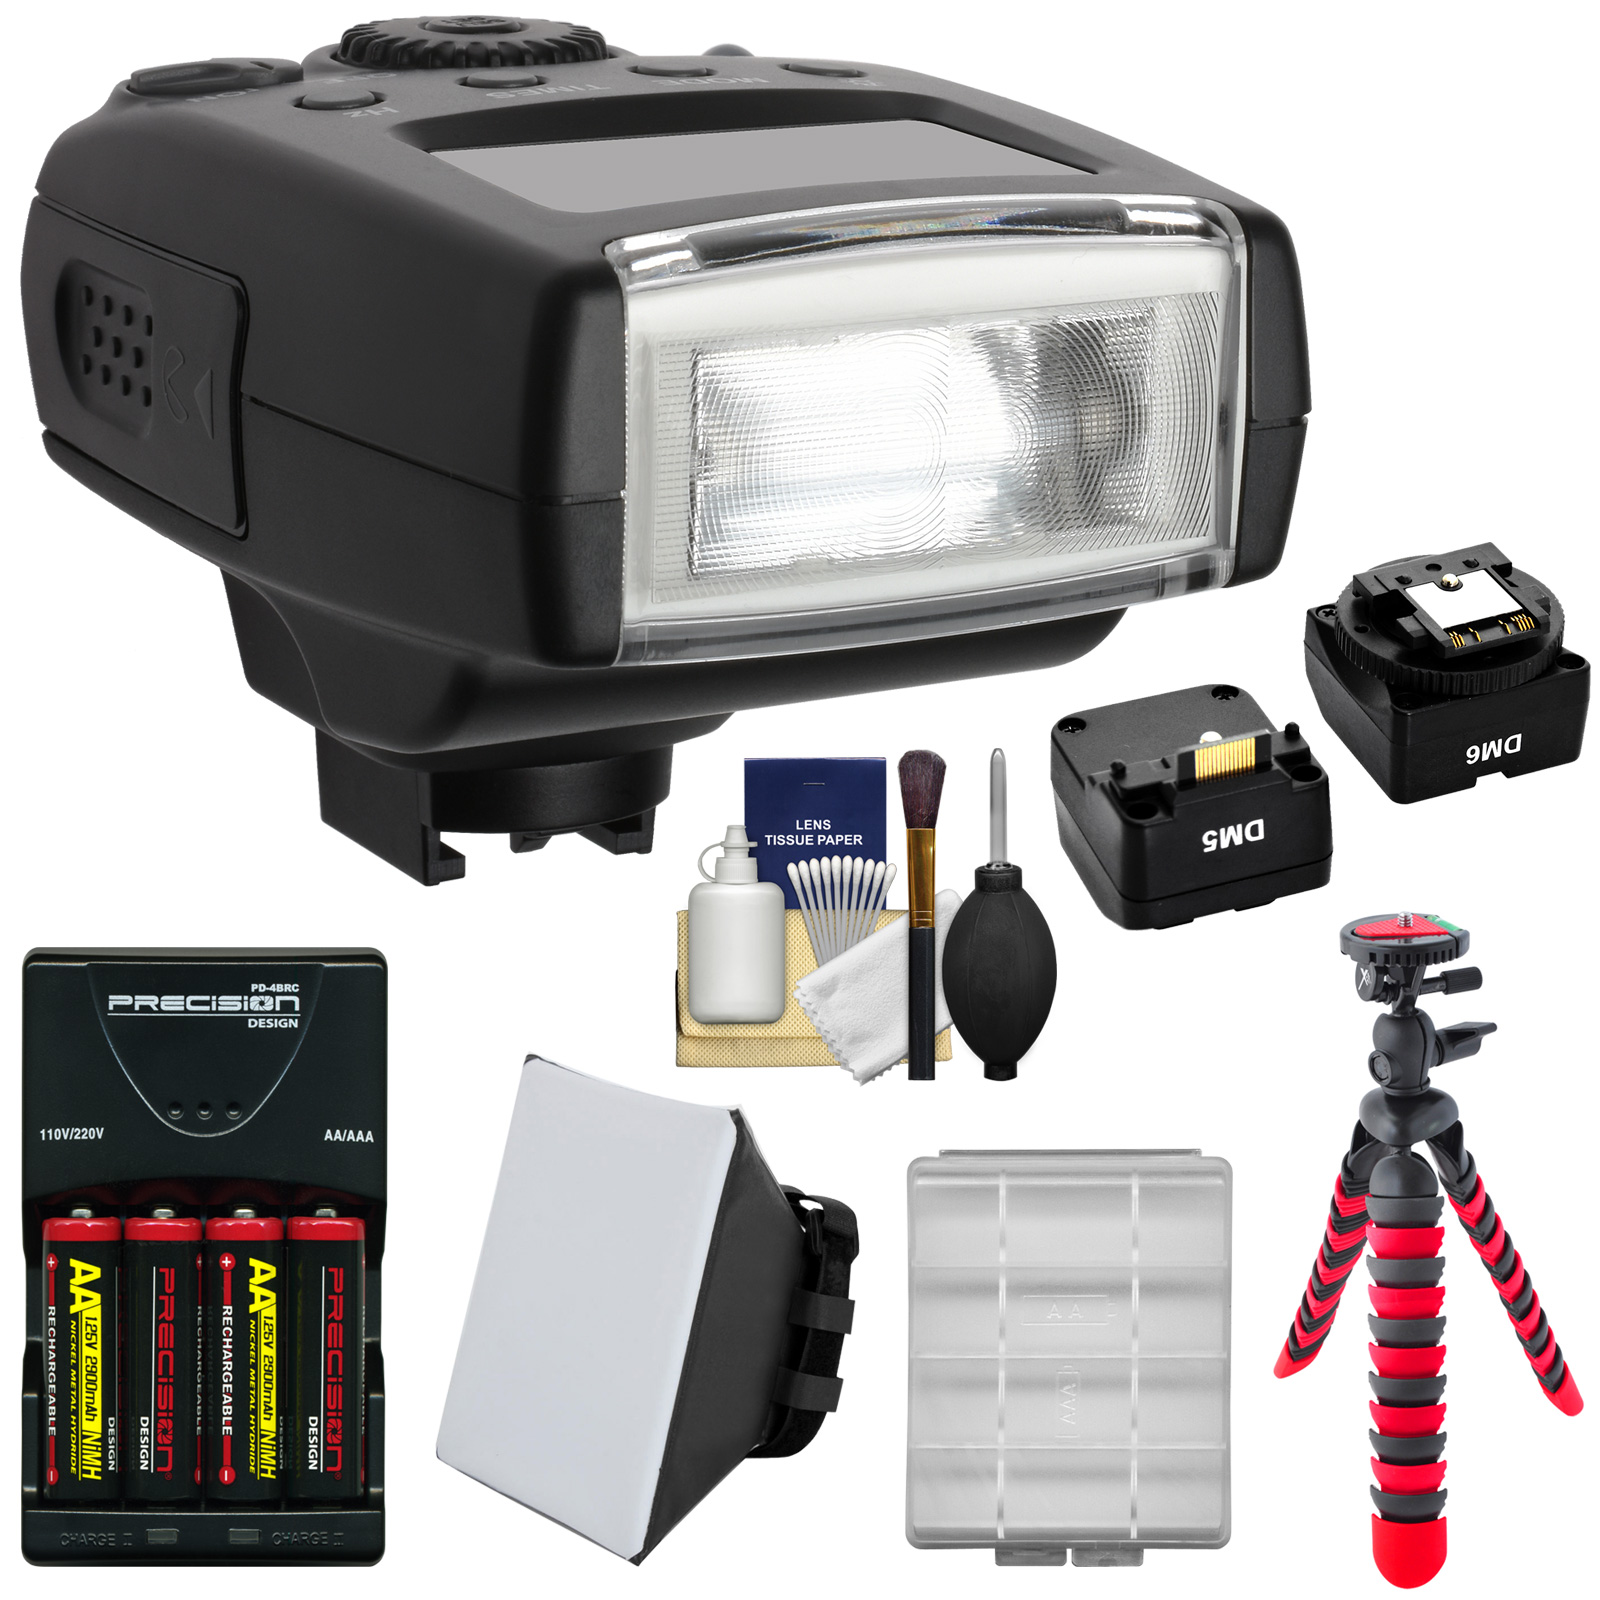 Digitalmate 130 High Power Compact Flash with Batteries & Charger + Soft Box + Tripod Kit for Sony Alpha / ILC NEX Cameras